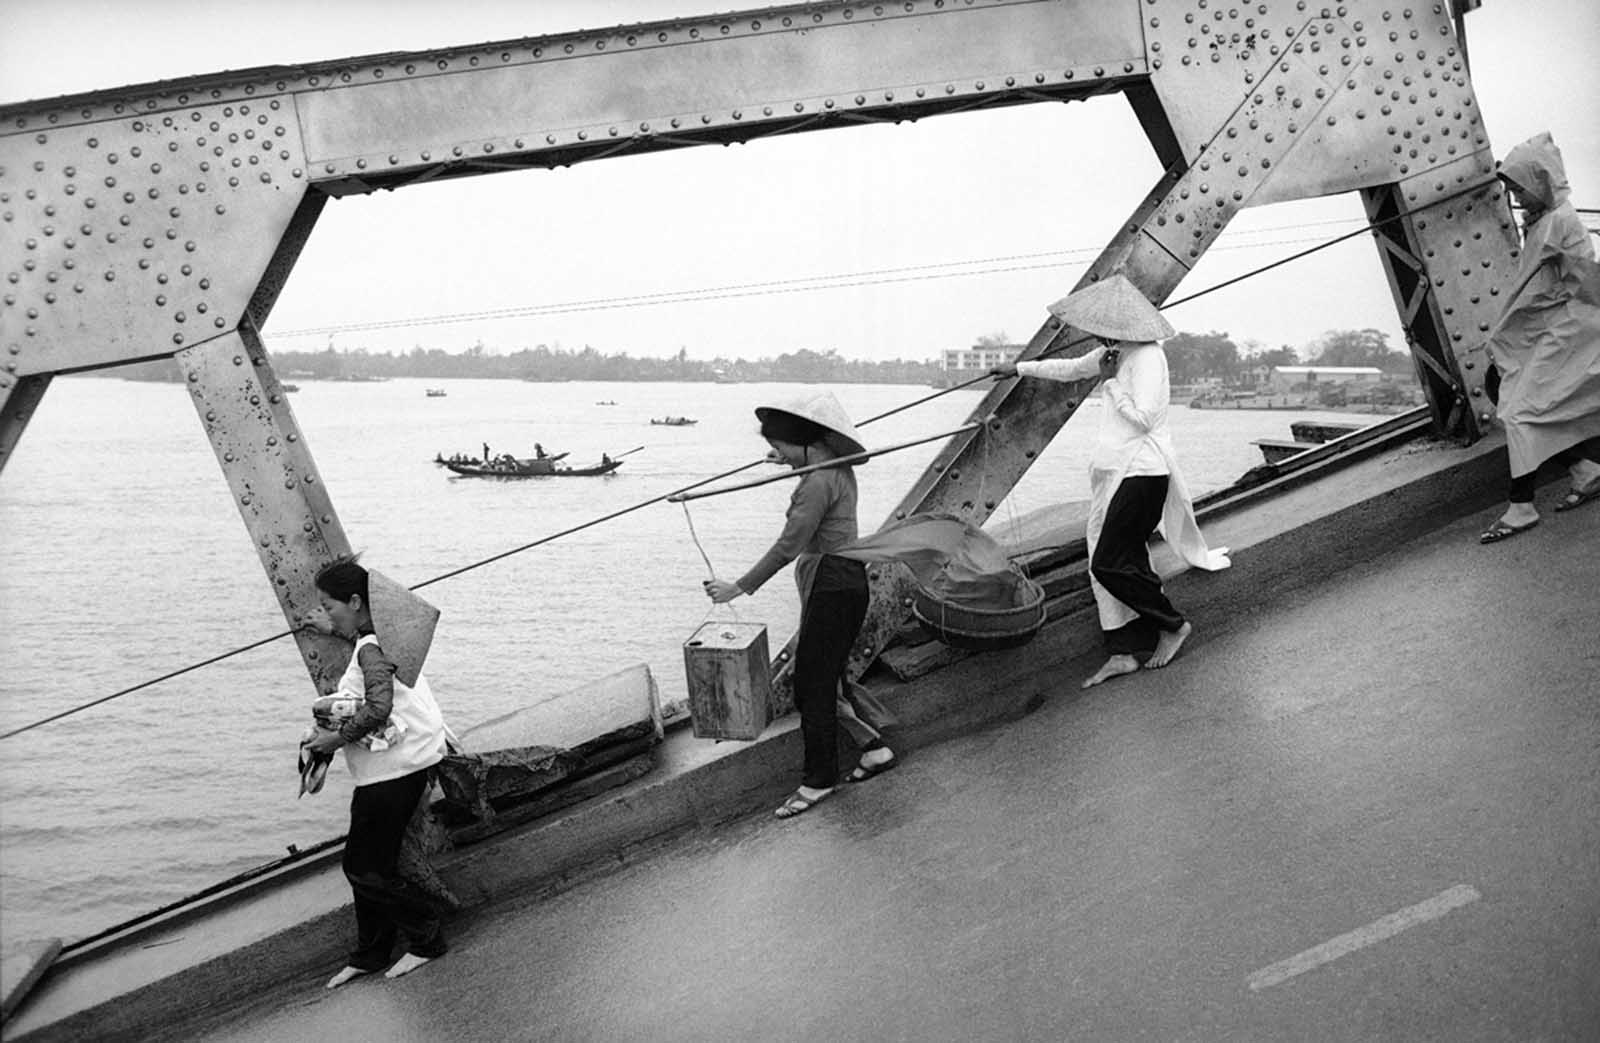 Pedestrians cross the destroyed Hue Bridge in Hue, Vietnam, in an undated photo.